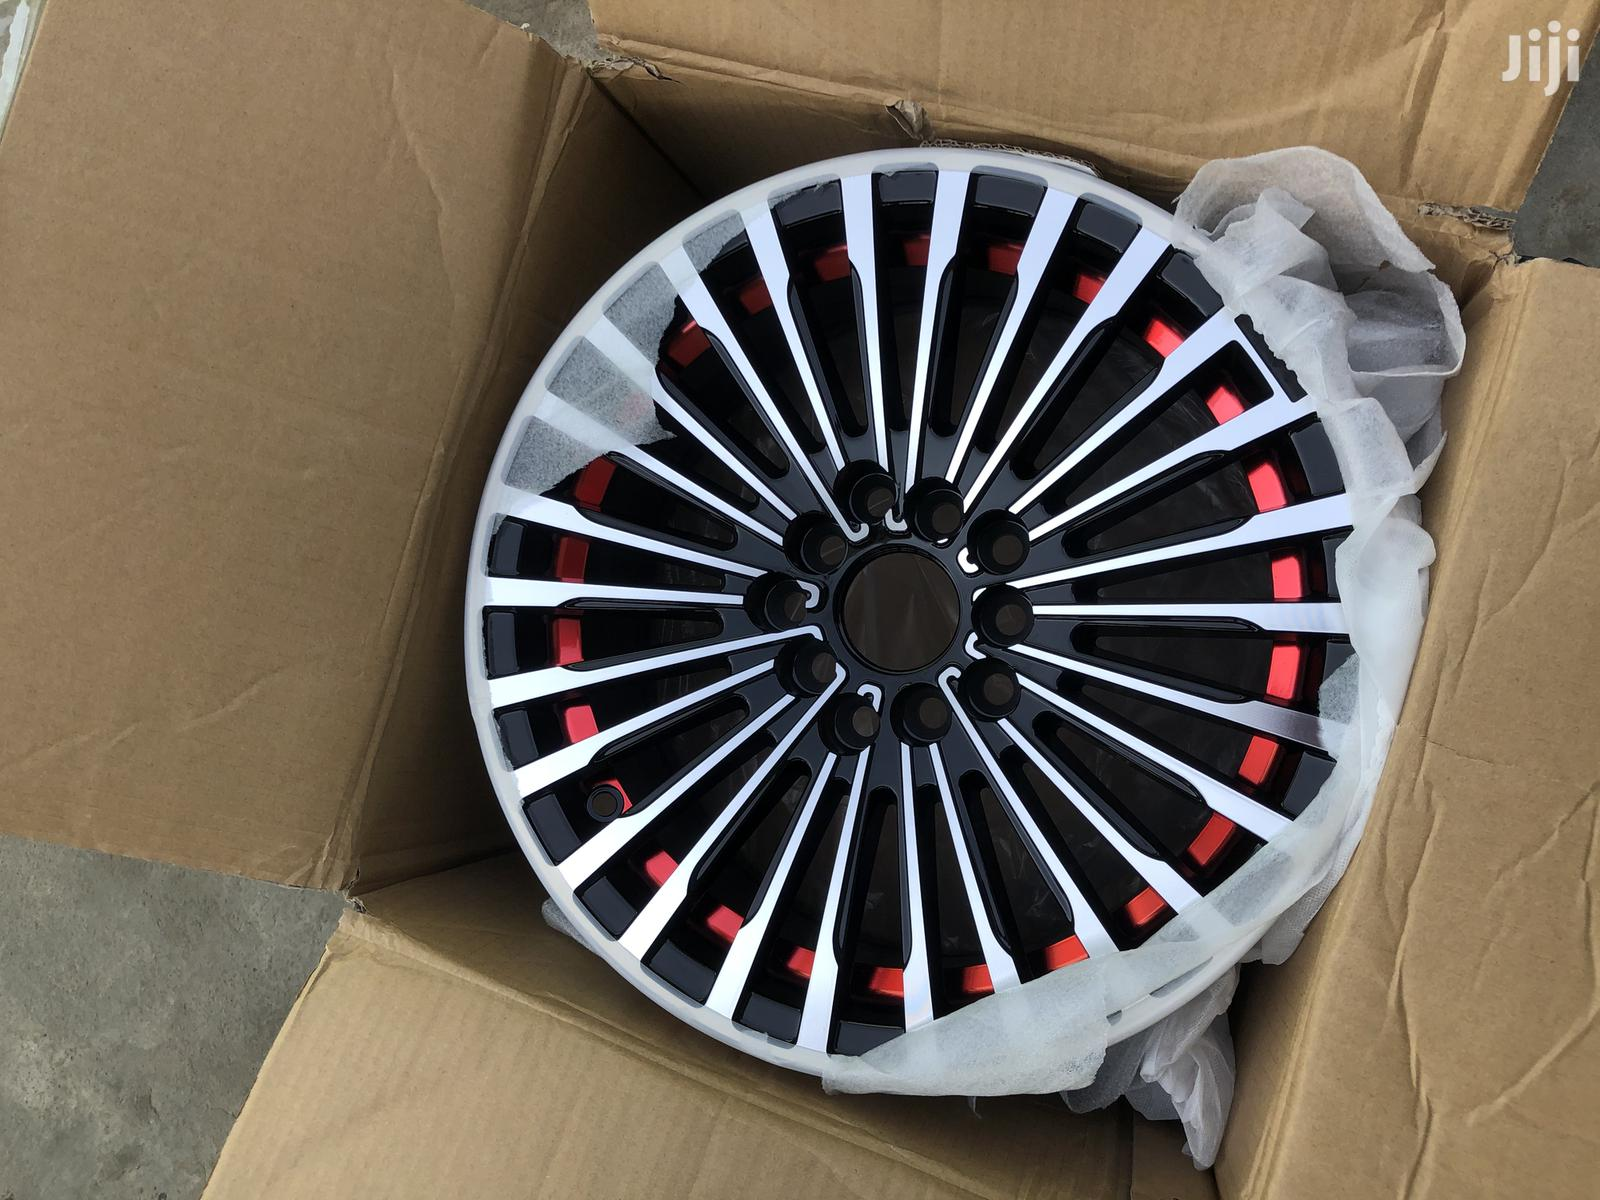 Swapping Of Rims Is Available